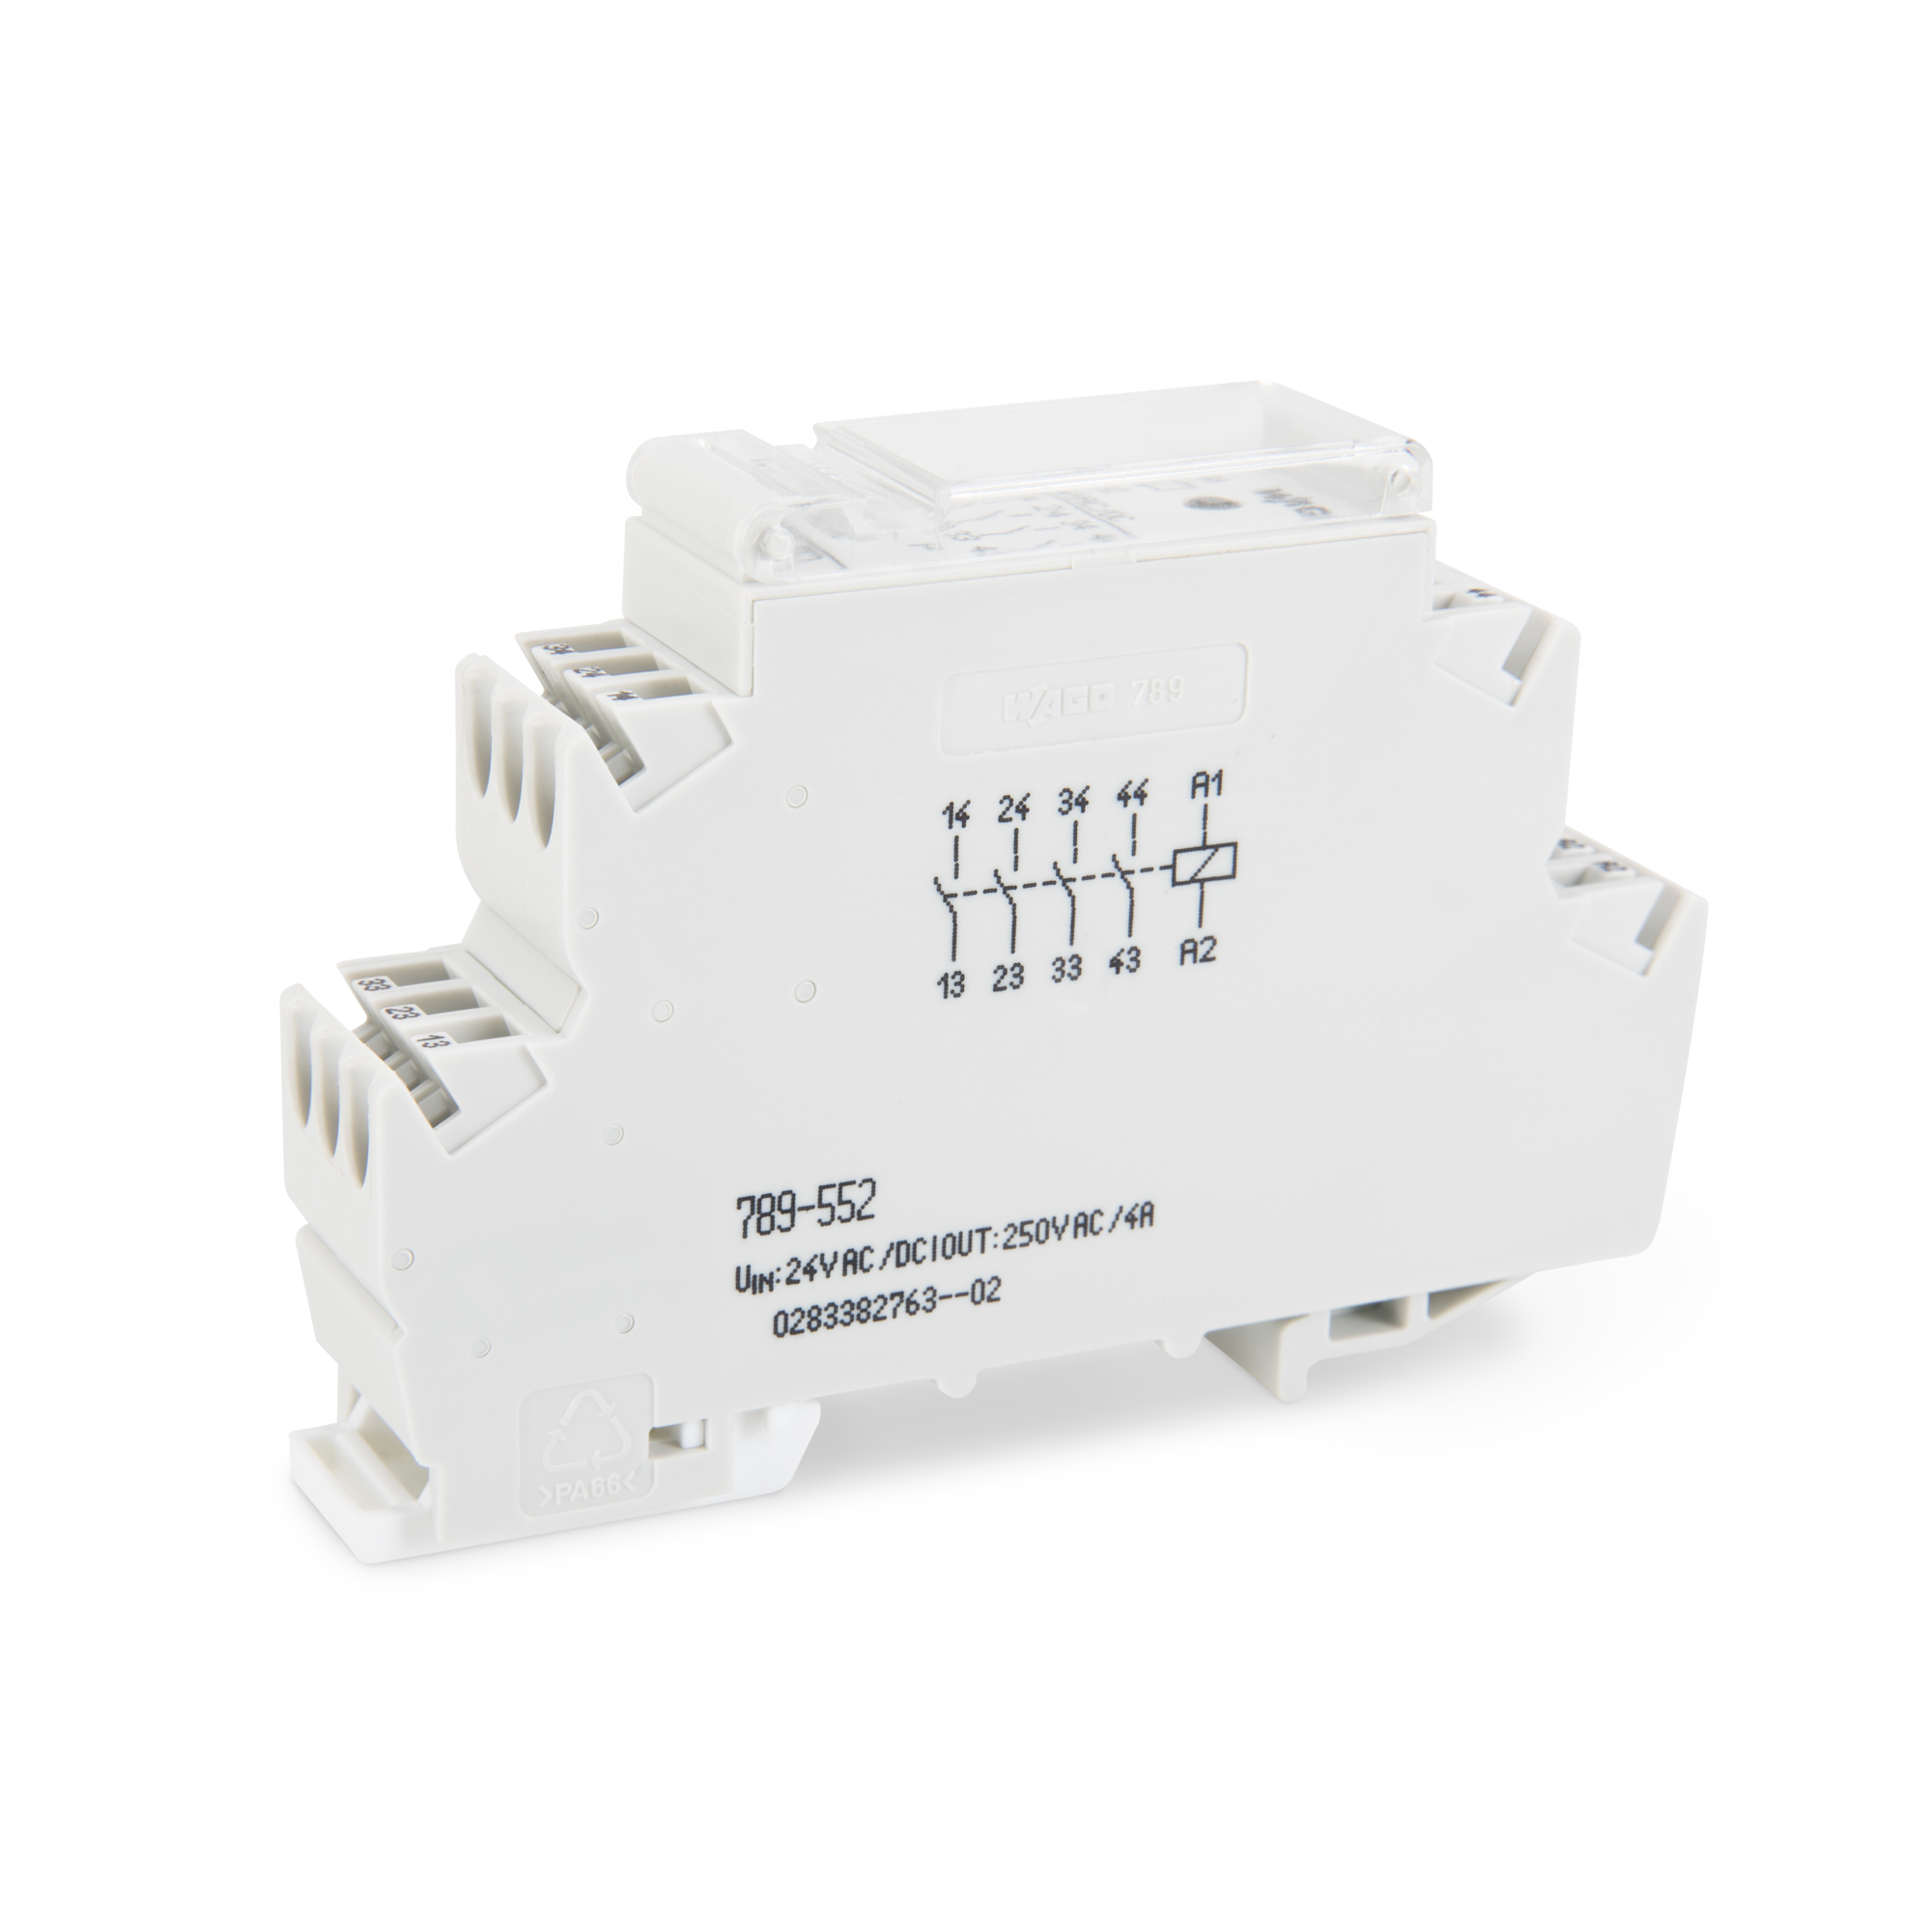 Wago Relay And Optocoupler Modules For A Wide Range Of Jual Switch In Din Rail Mount Enclosure 789 Series